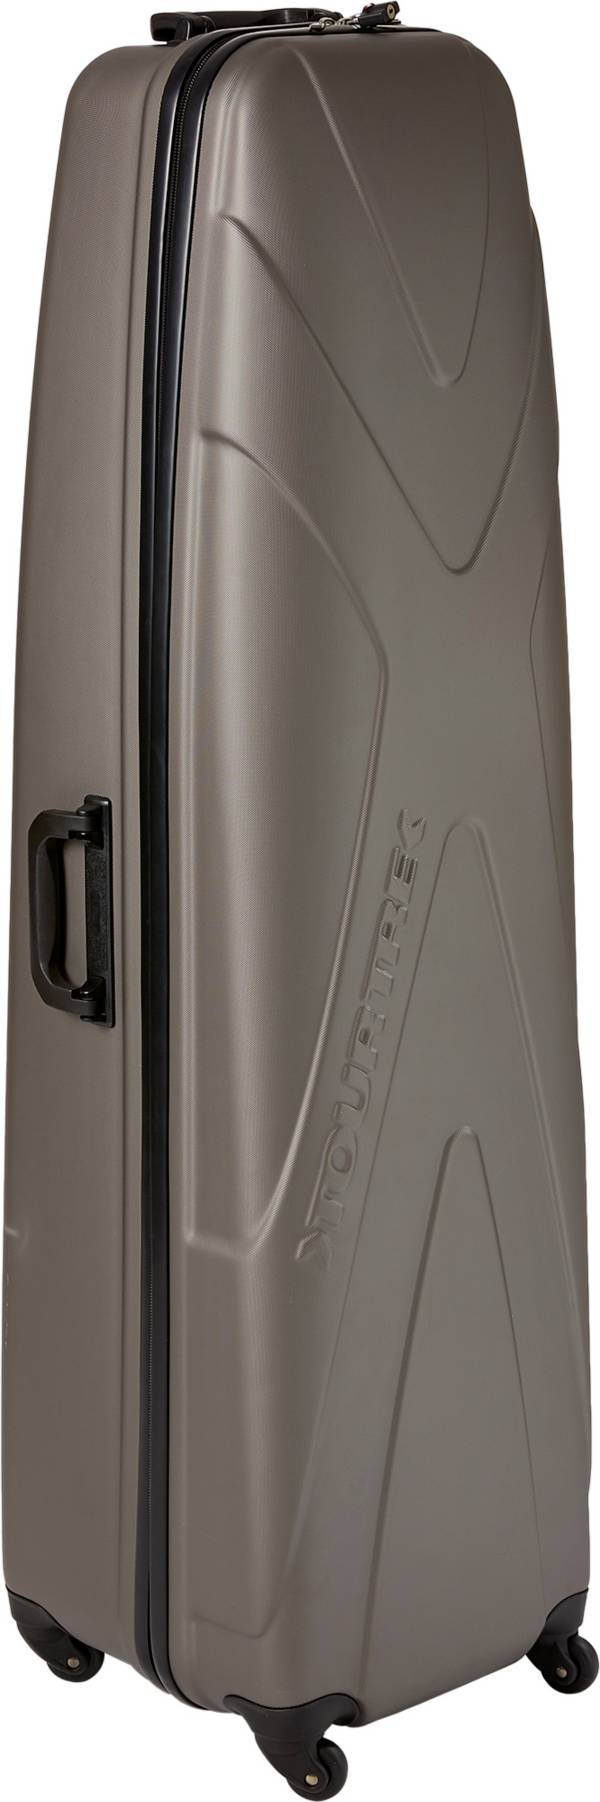 TourTrek Premium Hardcase Travel Cover product image